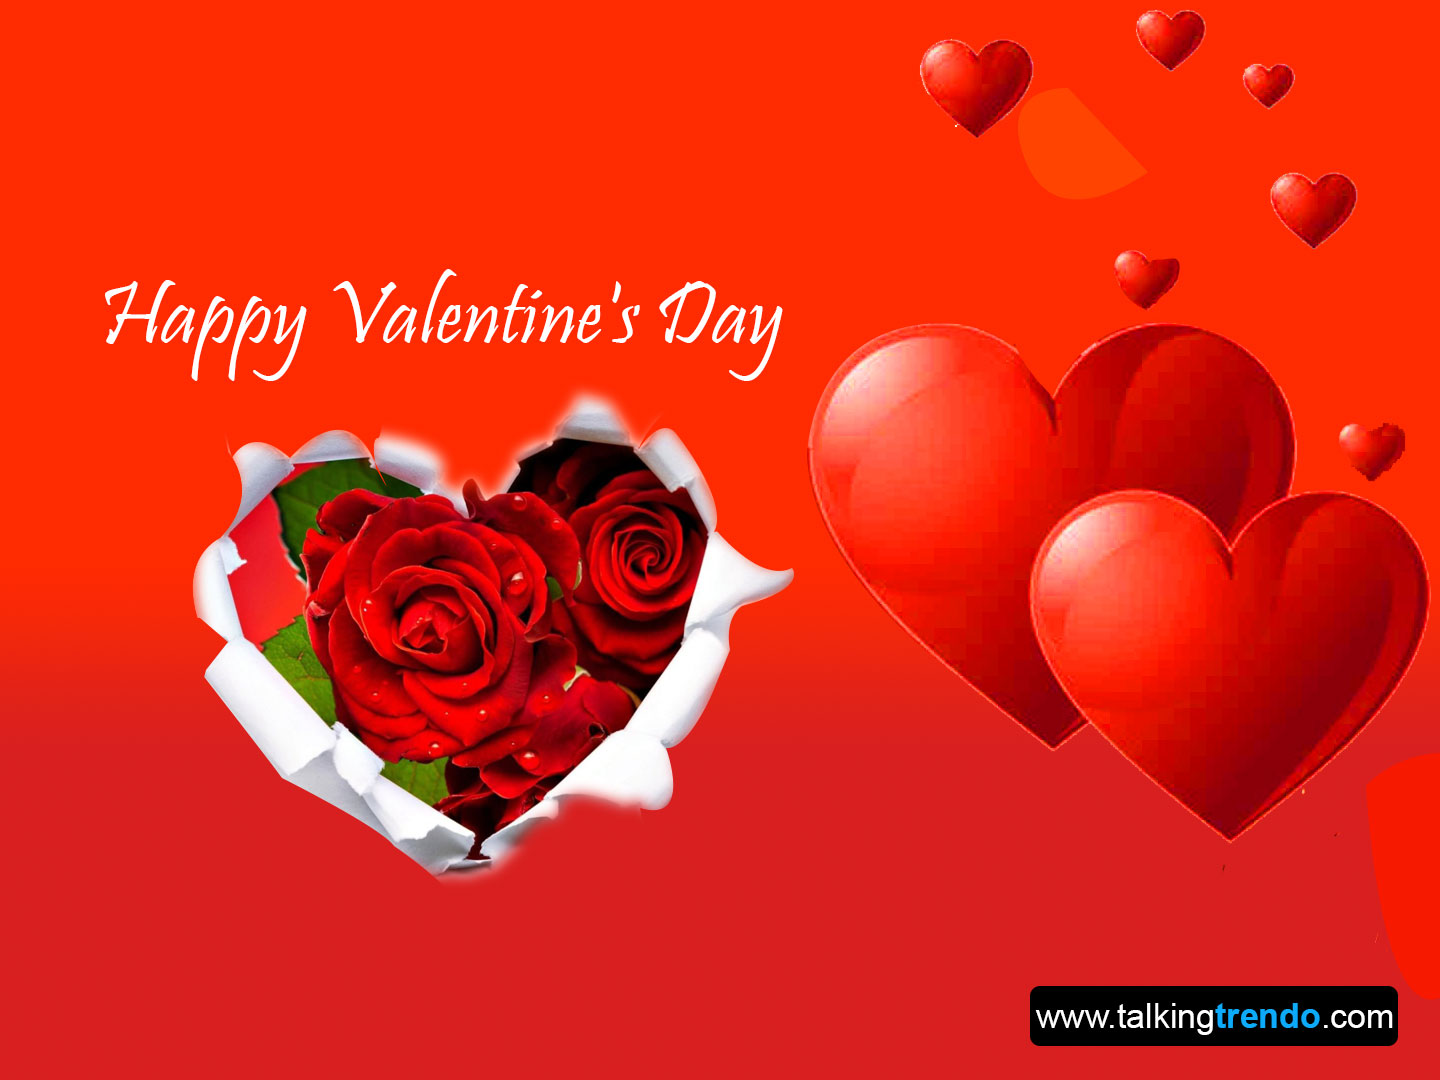 Happy Valentines Day Images Wallpaper Wishes 2015 1440x1080